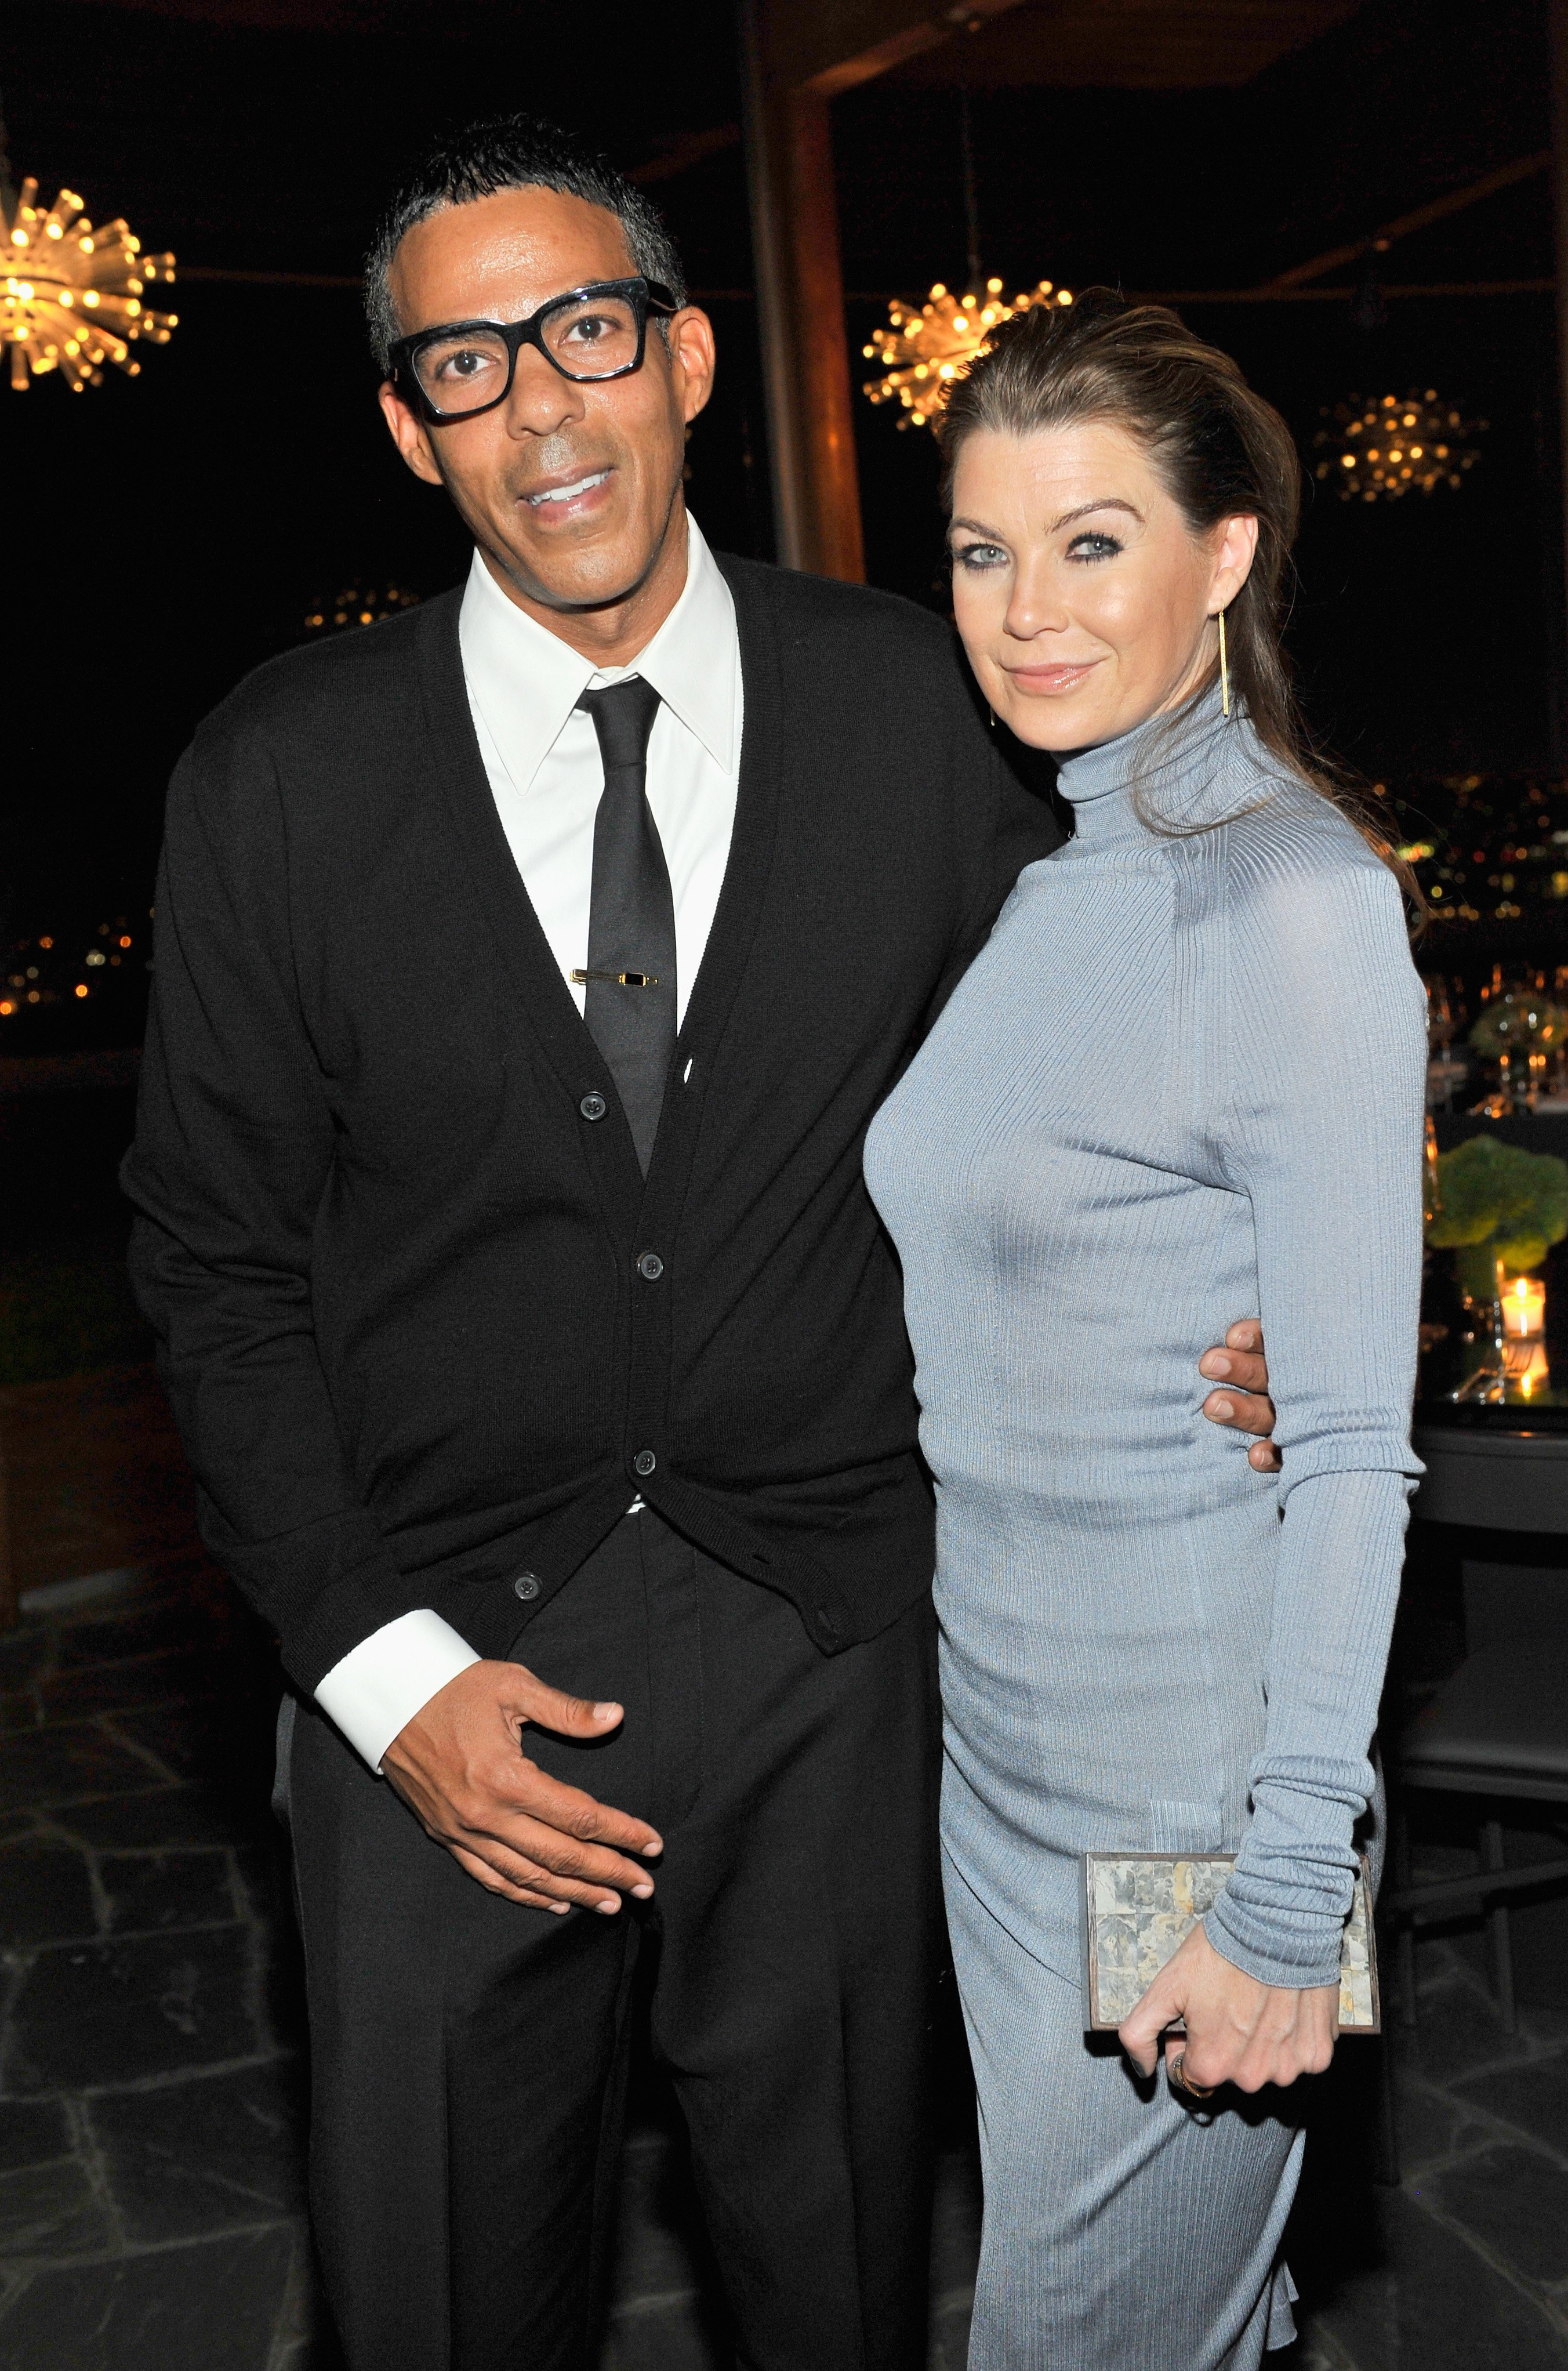 Ellen Pompeo and husband Chris Ivery on November 5, 2014 in Los Angeles, California   Source: Getty Images